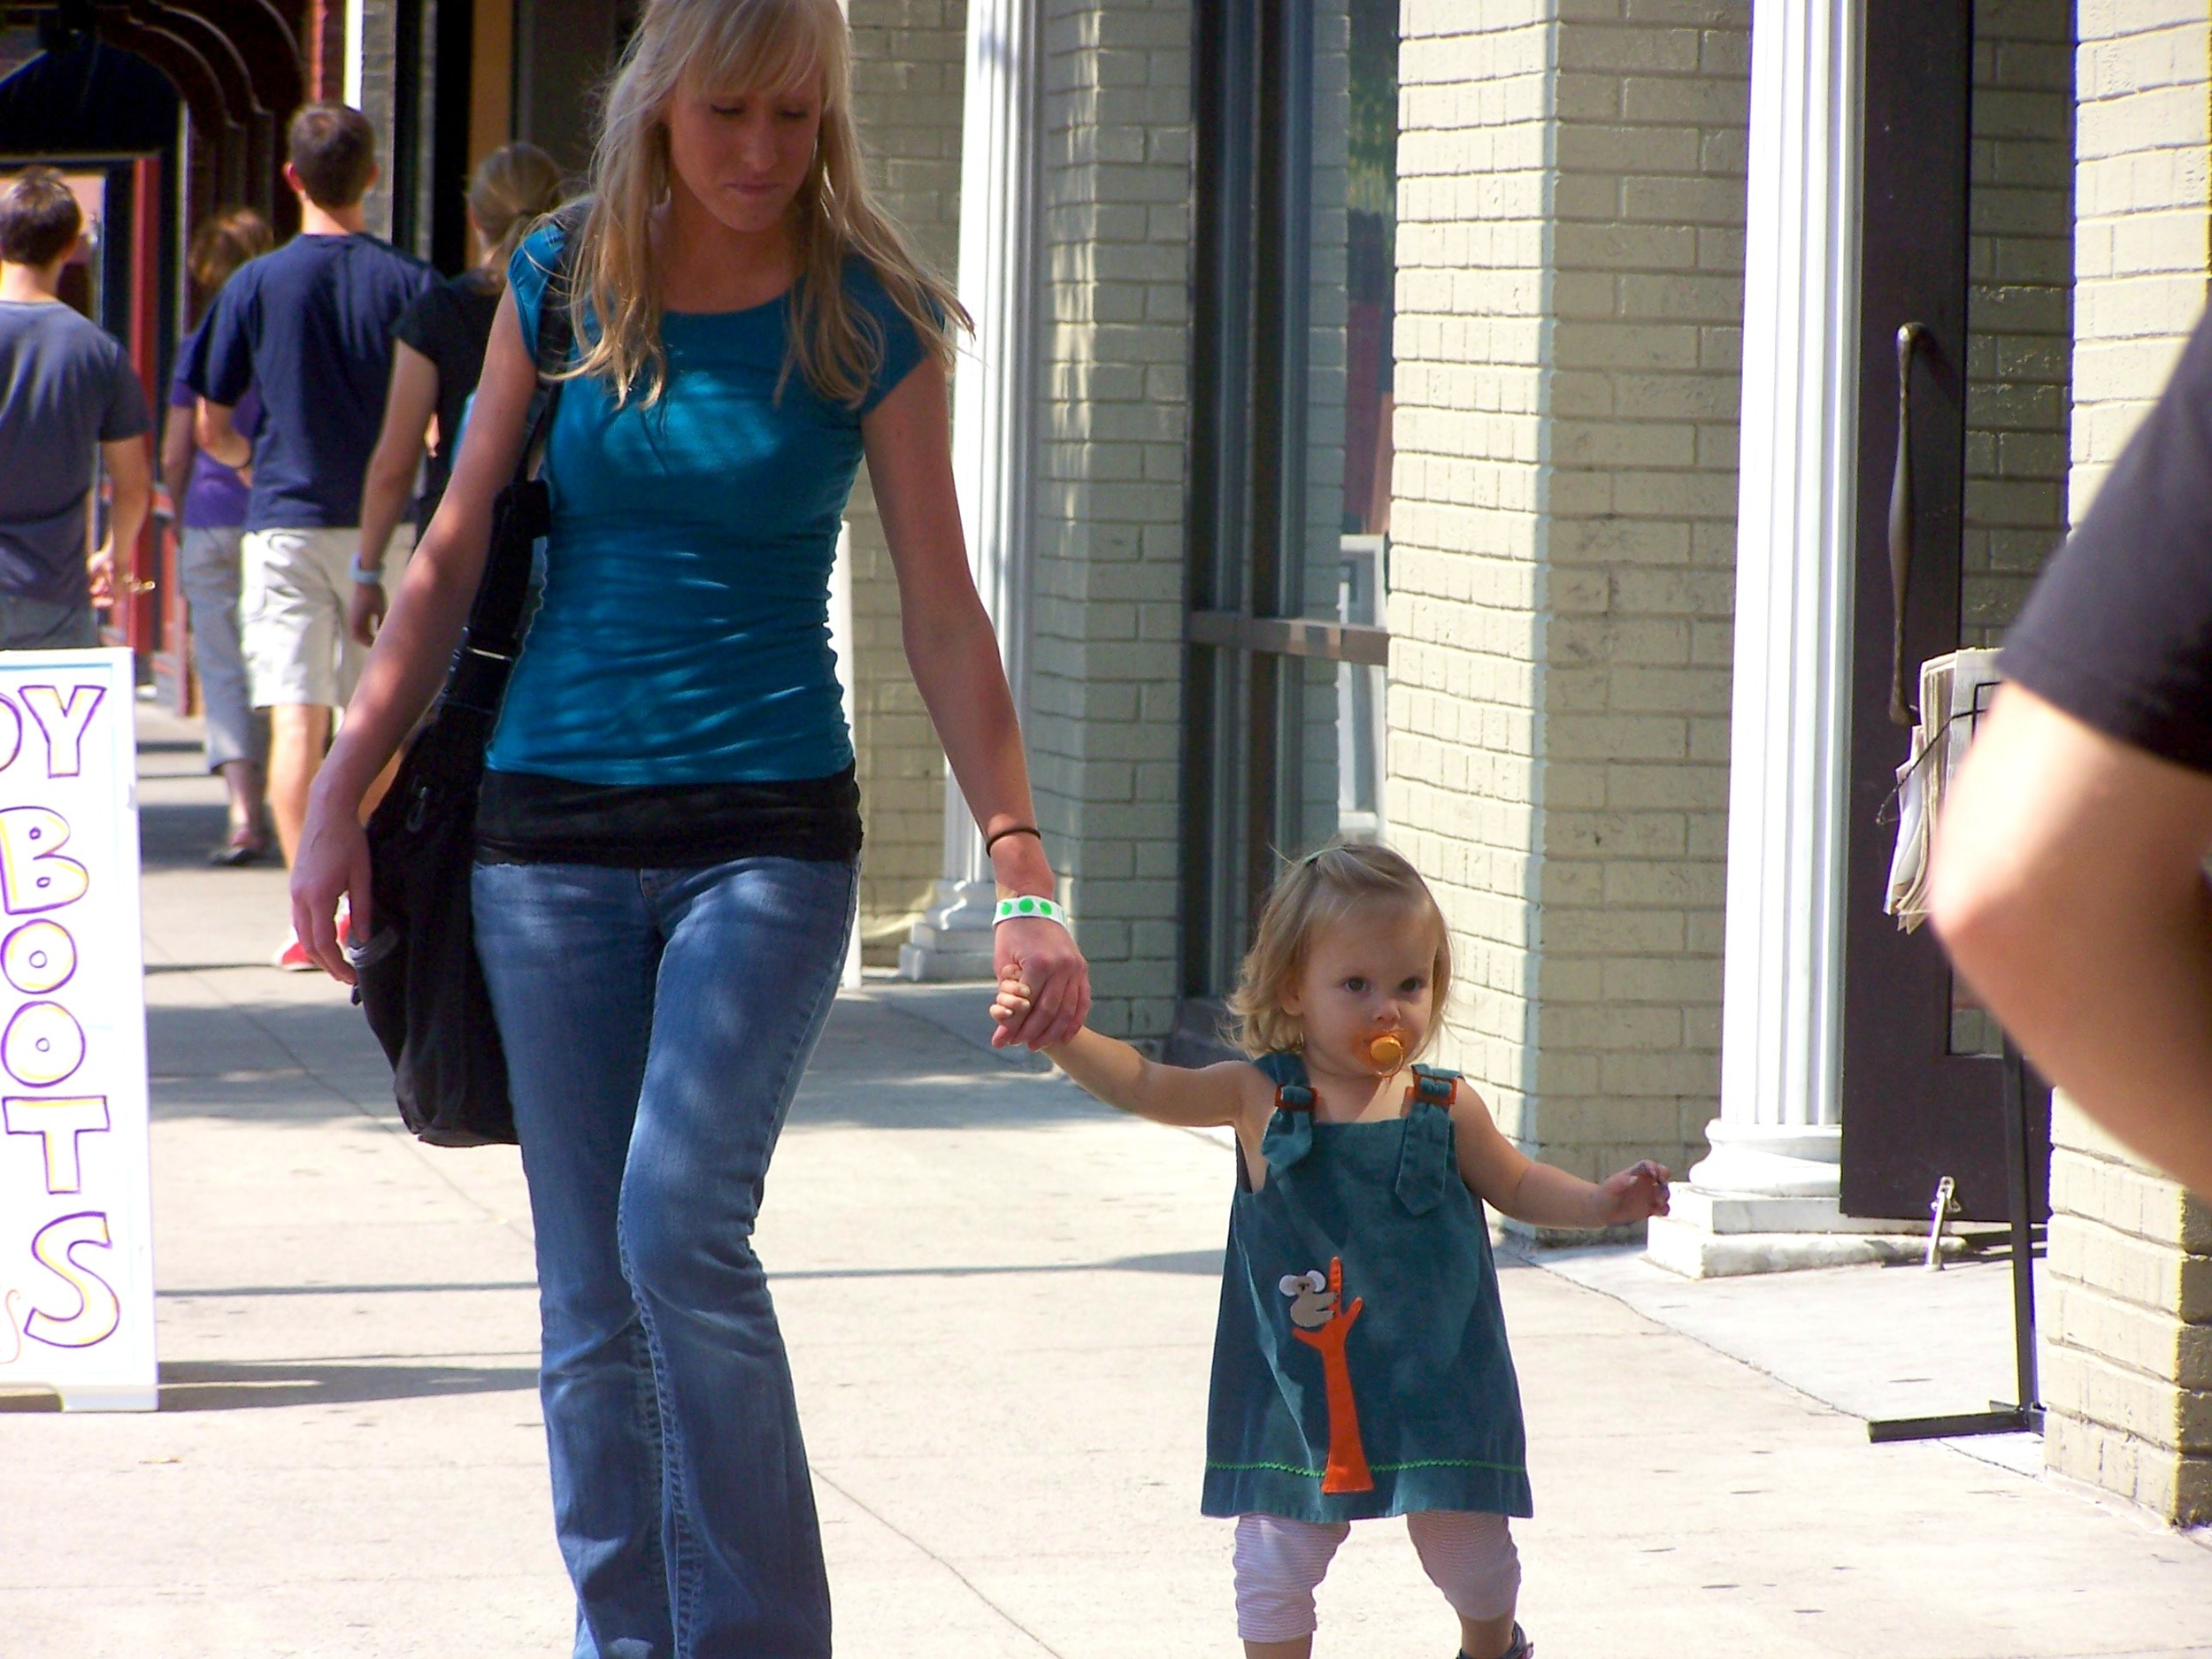 Mom & Daughter Walking.jpg.jpg